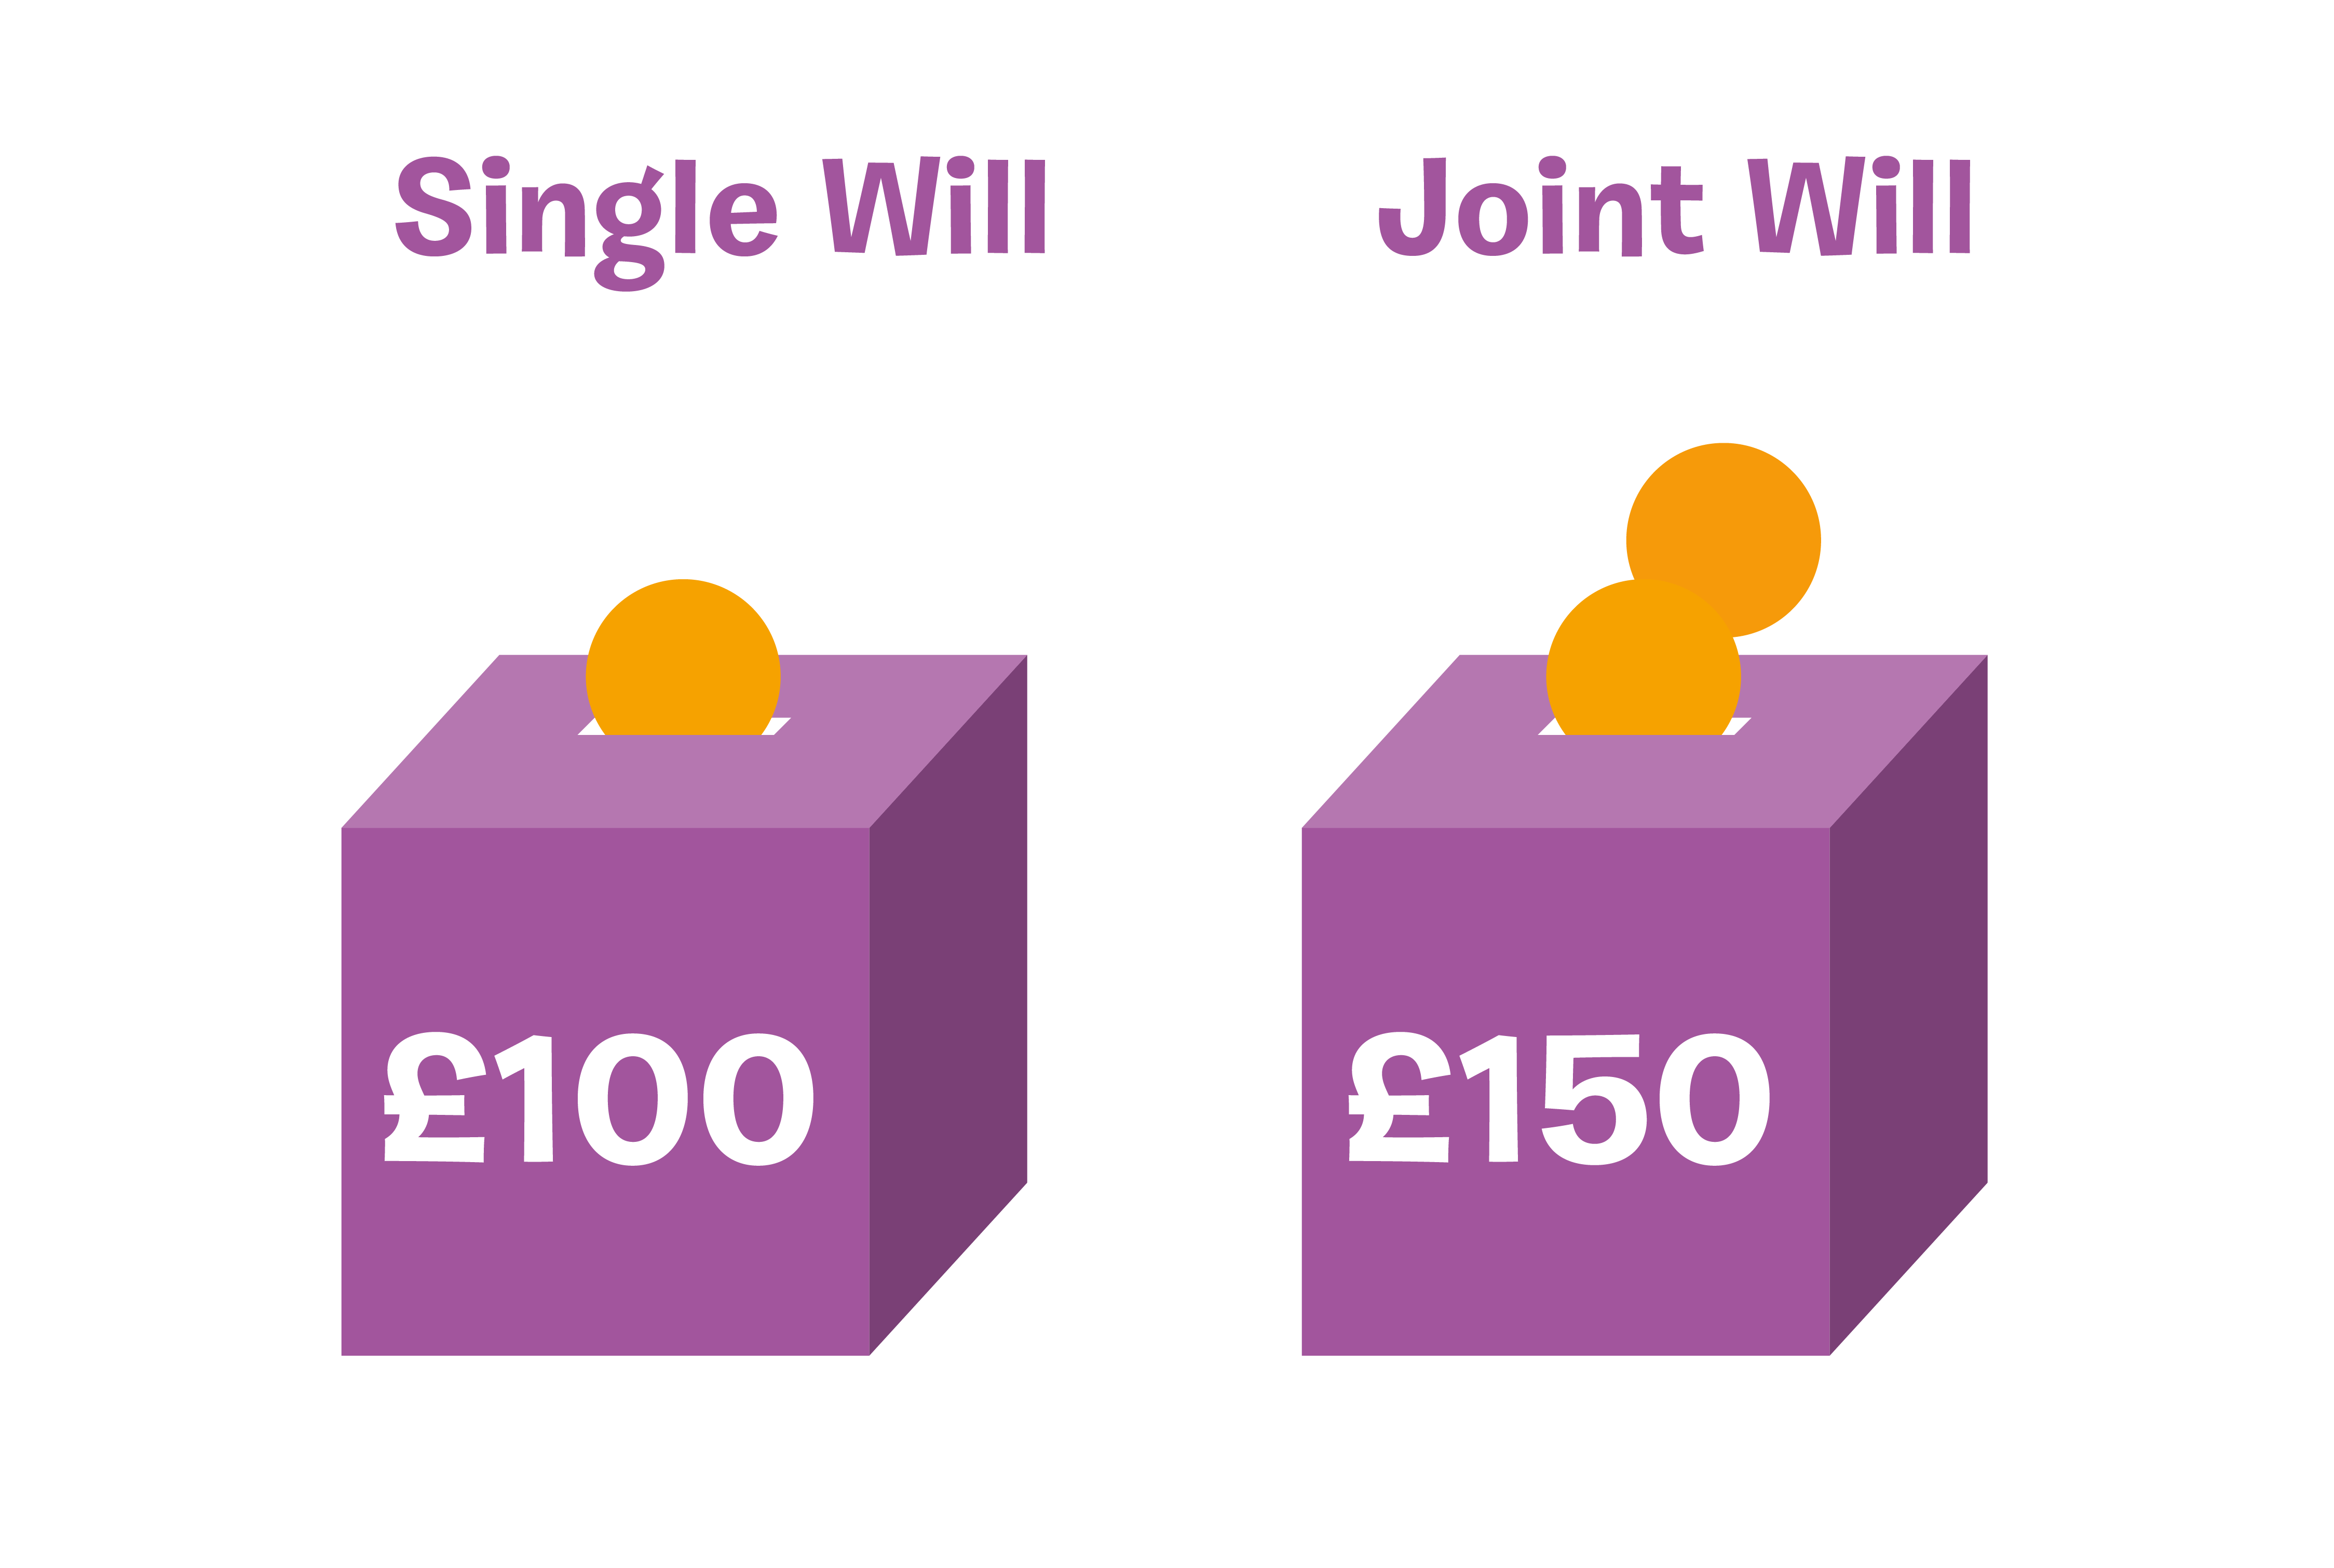 Single Will £100/Joint Will £150